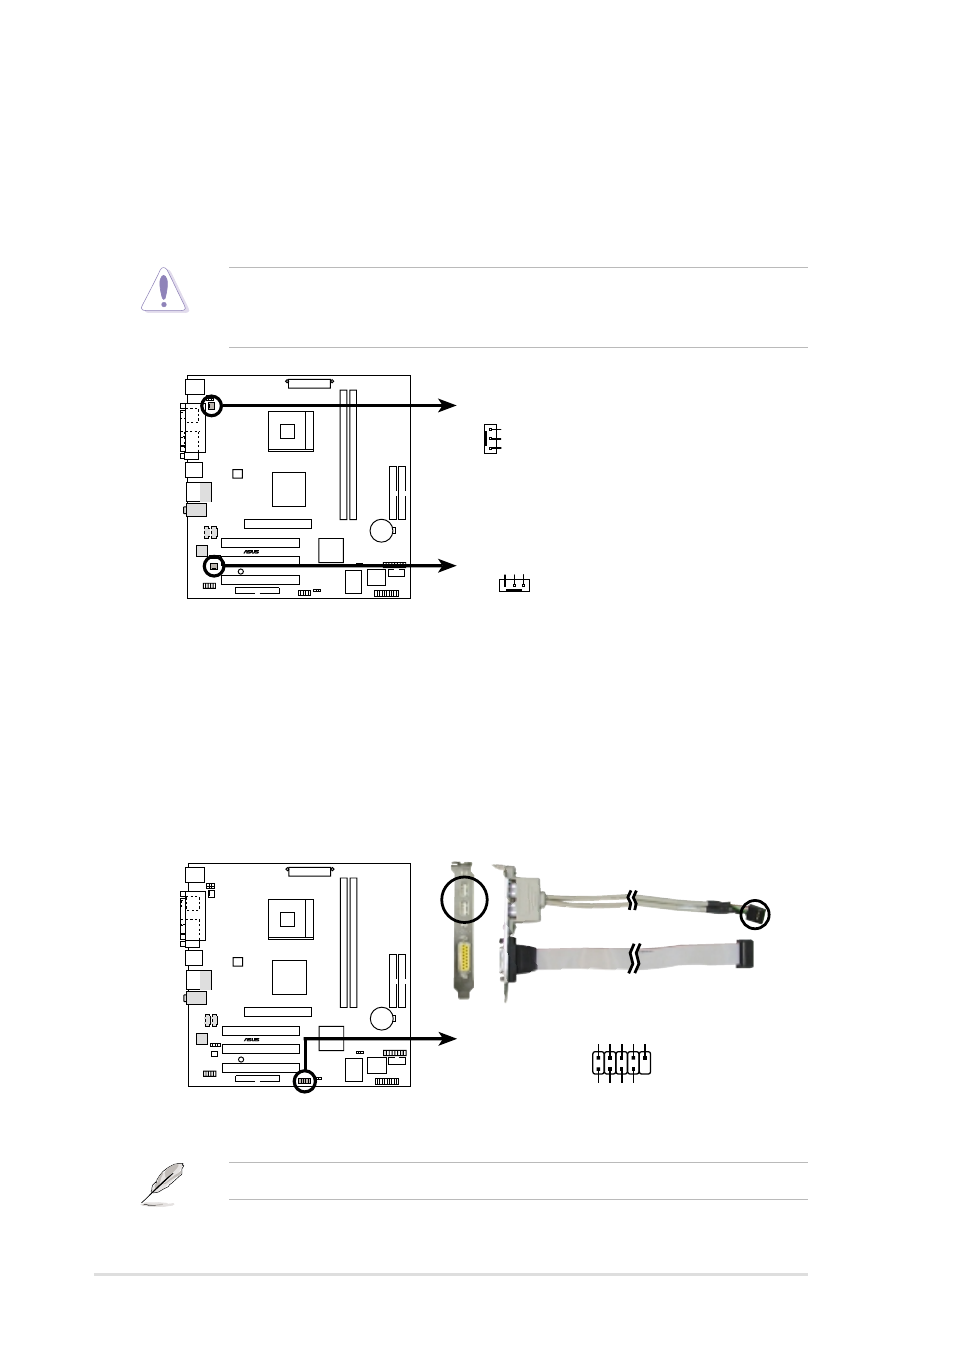 20 Chapter 1 Product Introduction Asus P4sp Mx User Manual Page Usb Motherboard Plug Wiring Diagram On 2 0 Connection 28 64